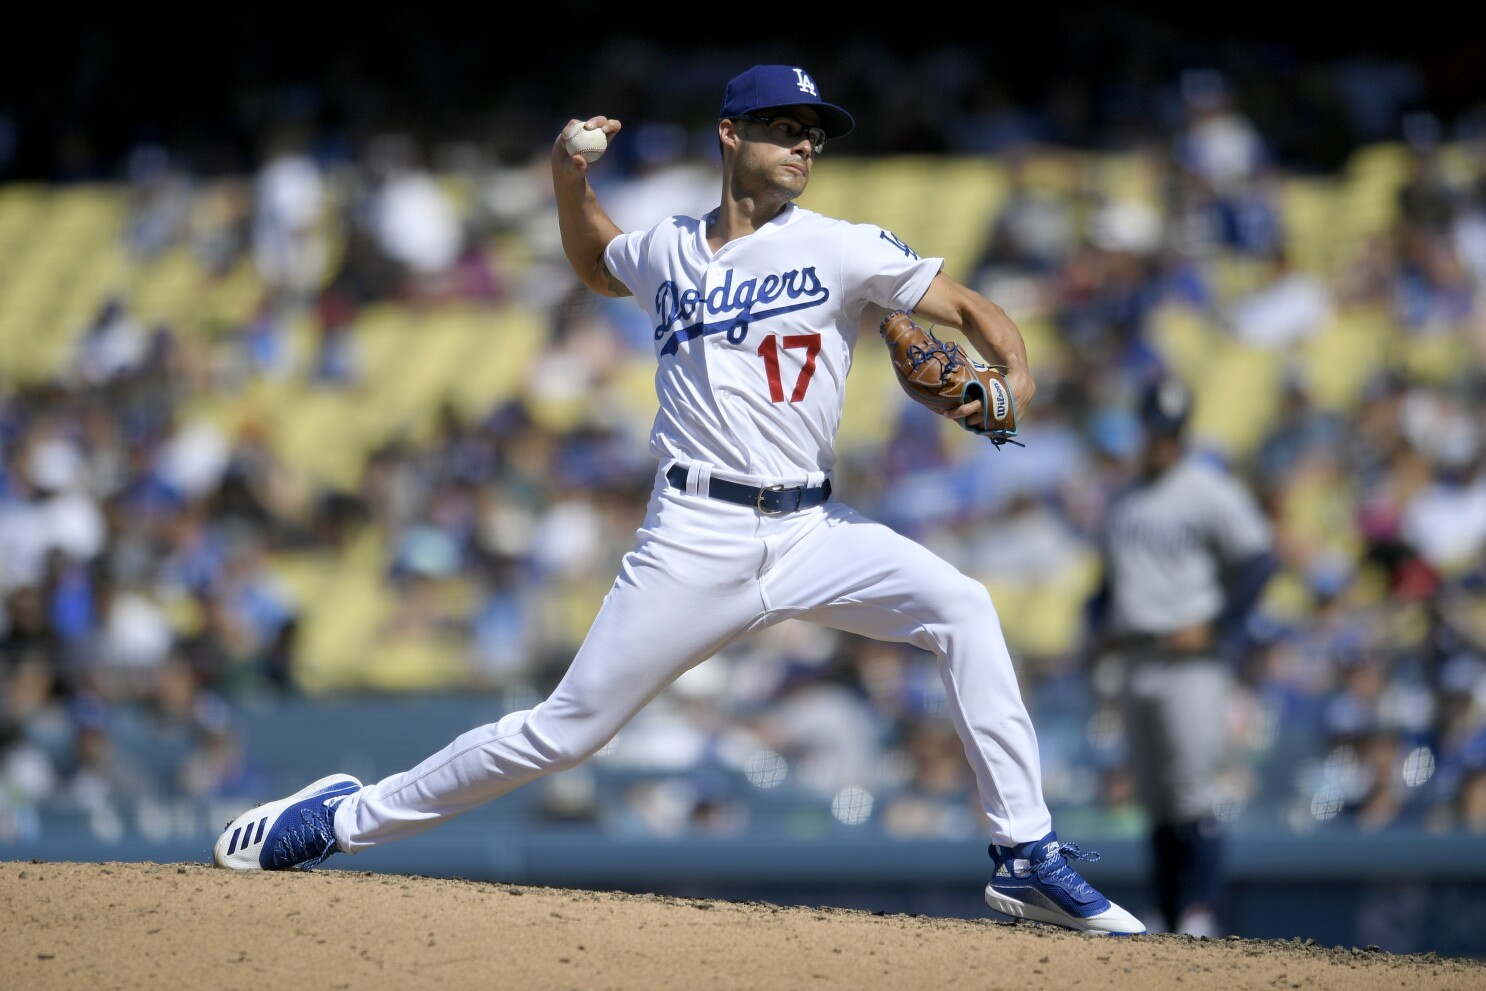 Dodgers reliever Joe Kelly pitching ...